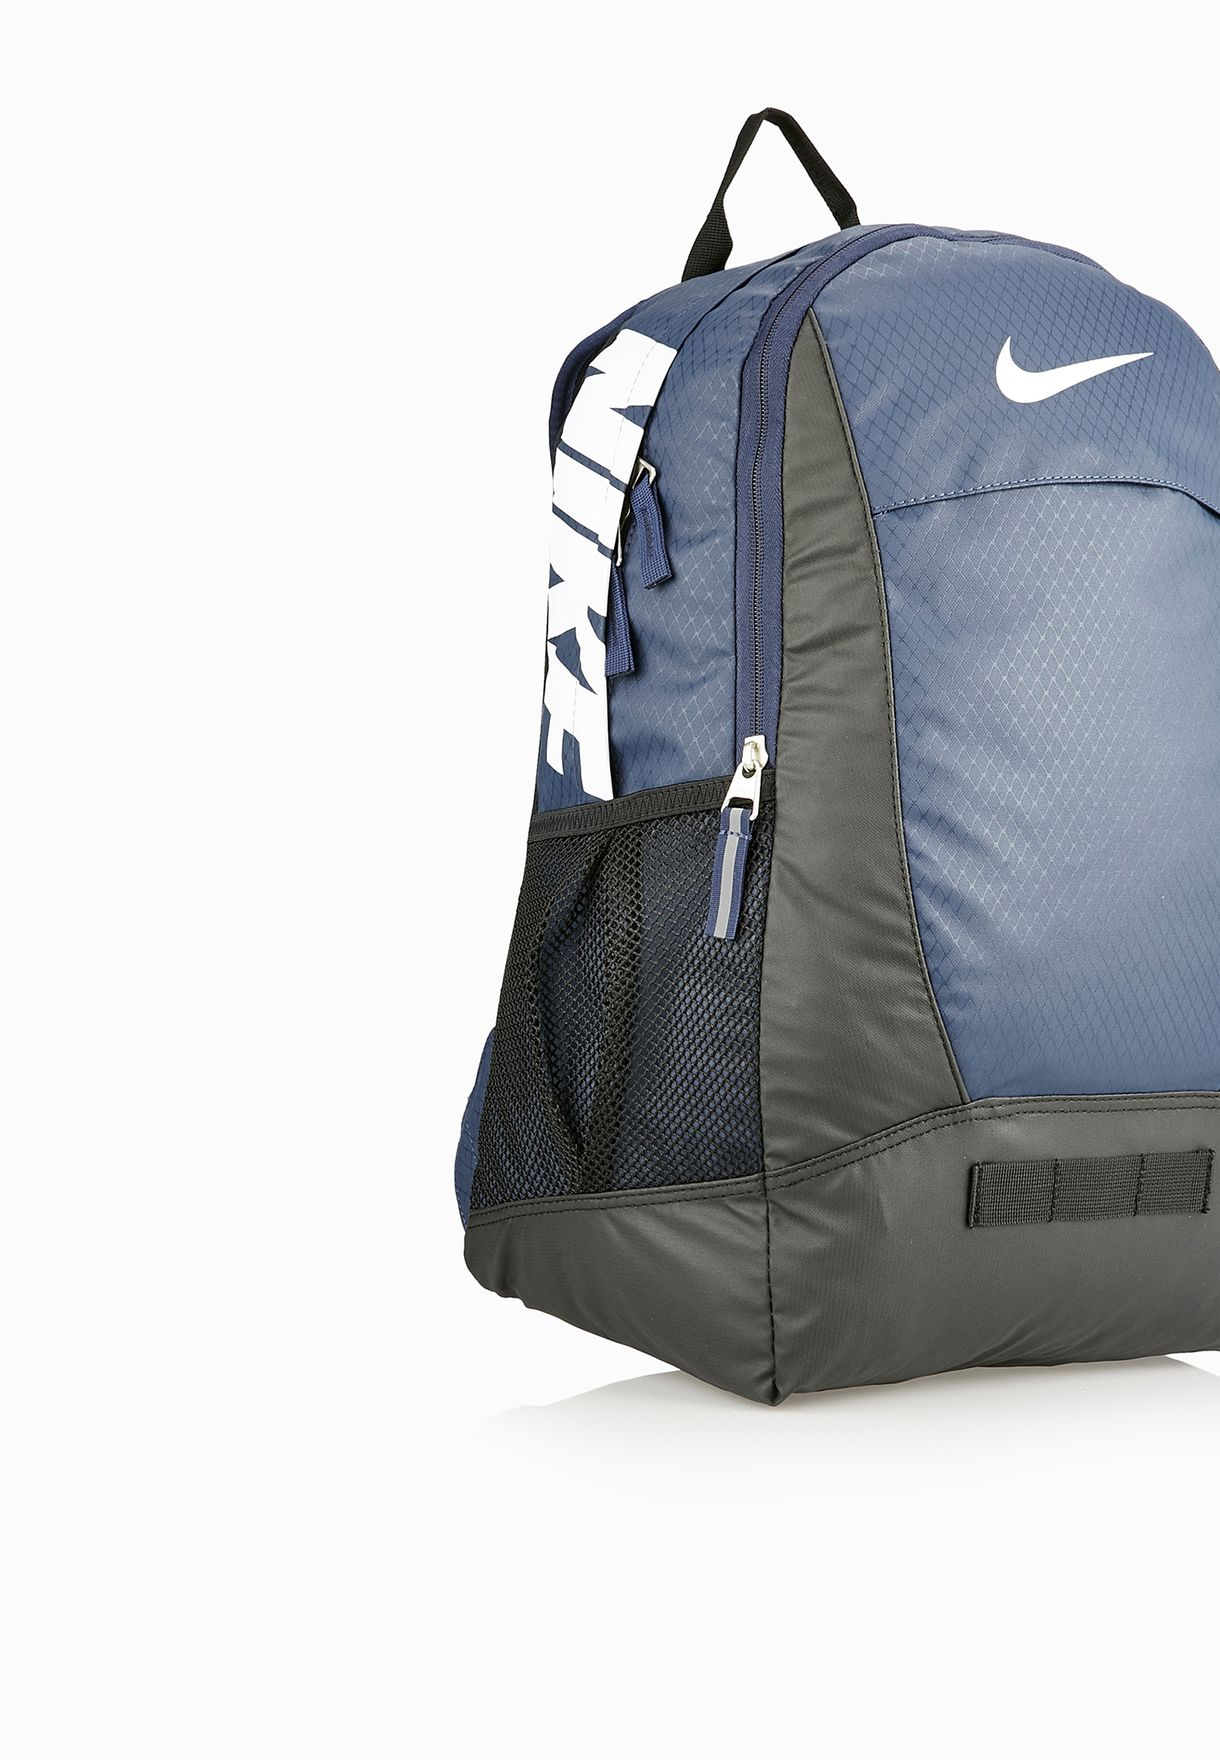 1cb44433e8f1 Shop Nike blue Medium Team Training Backpack BA4893-412 for ...